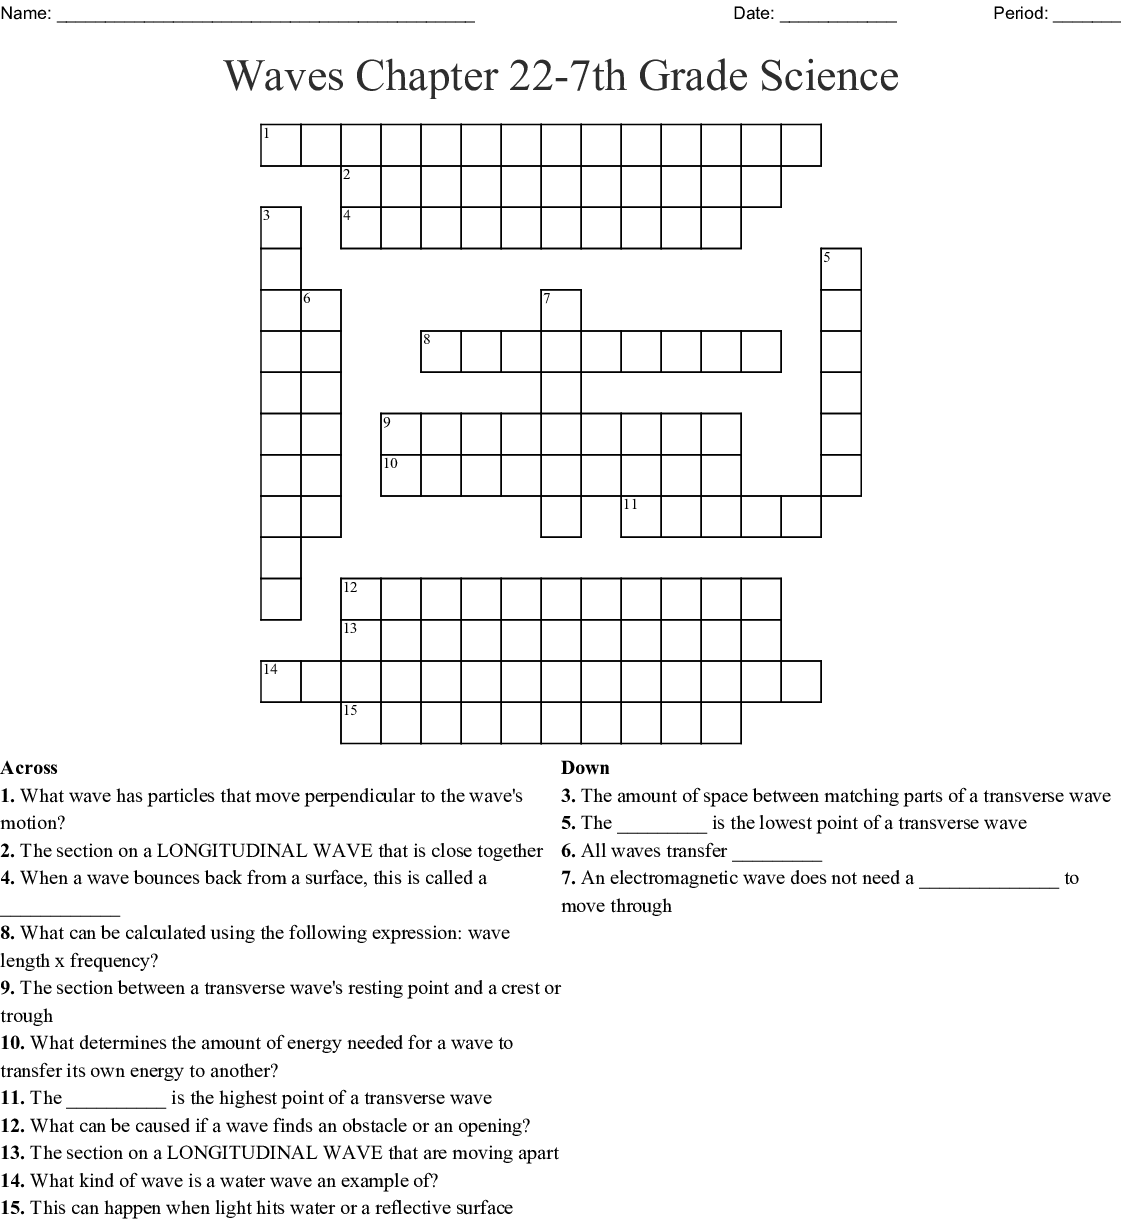 Waves Chapter 22 7th Grade Science Crossword